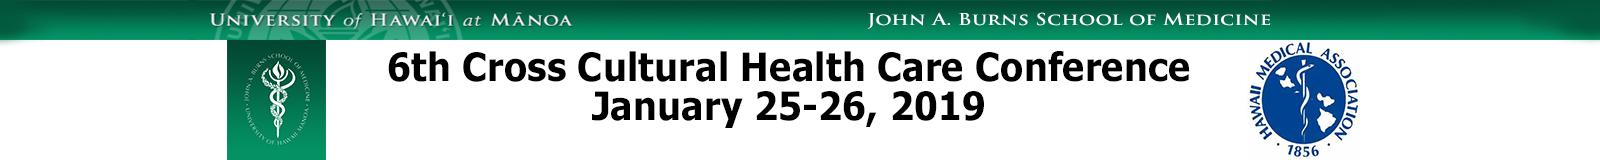 6th Cross Cultural Health Care Conference - Jan. 25-26, 2019